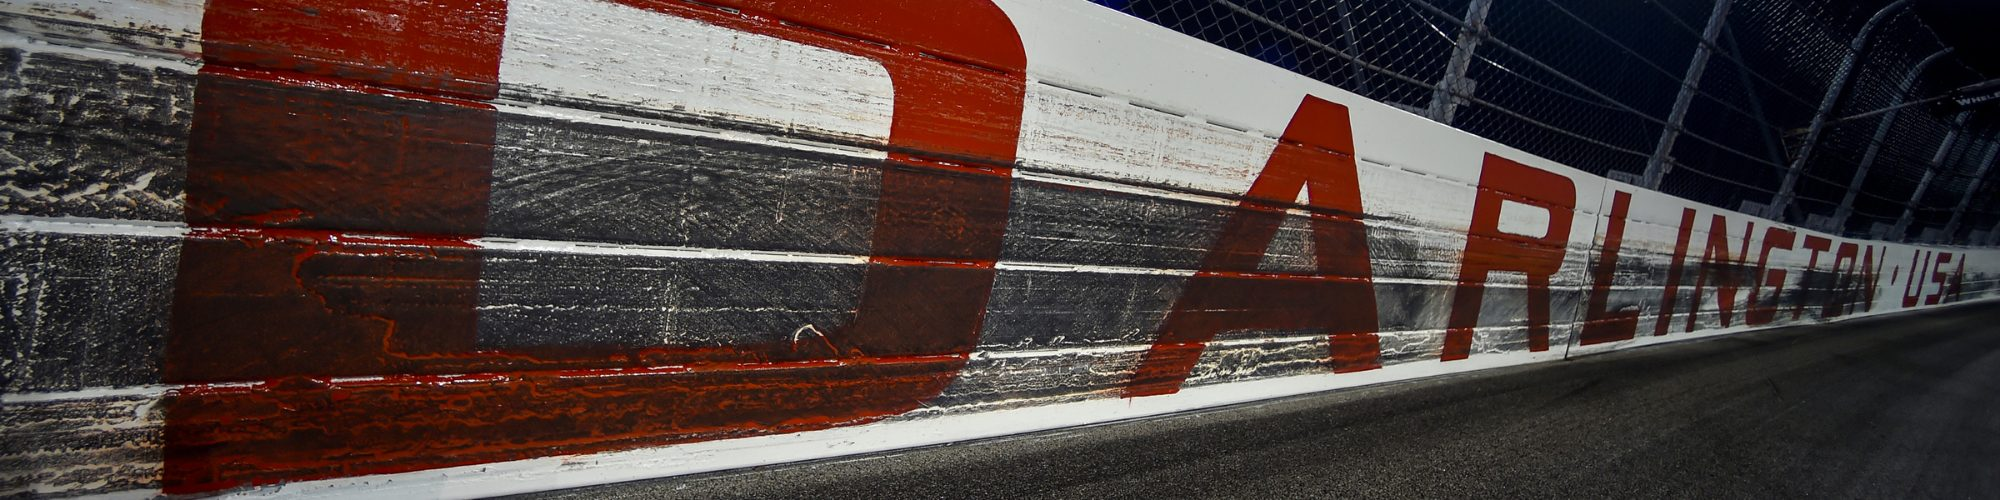 Darlington Raceway to host Track Laps for Charity event supporting Blessings in a Backpack